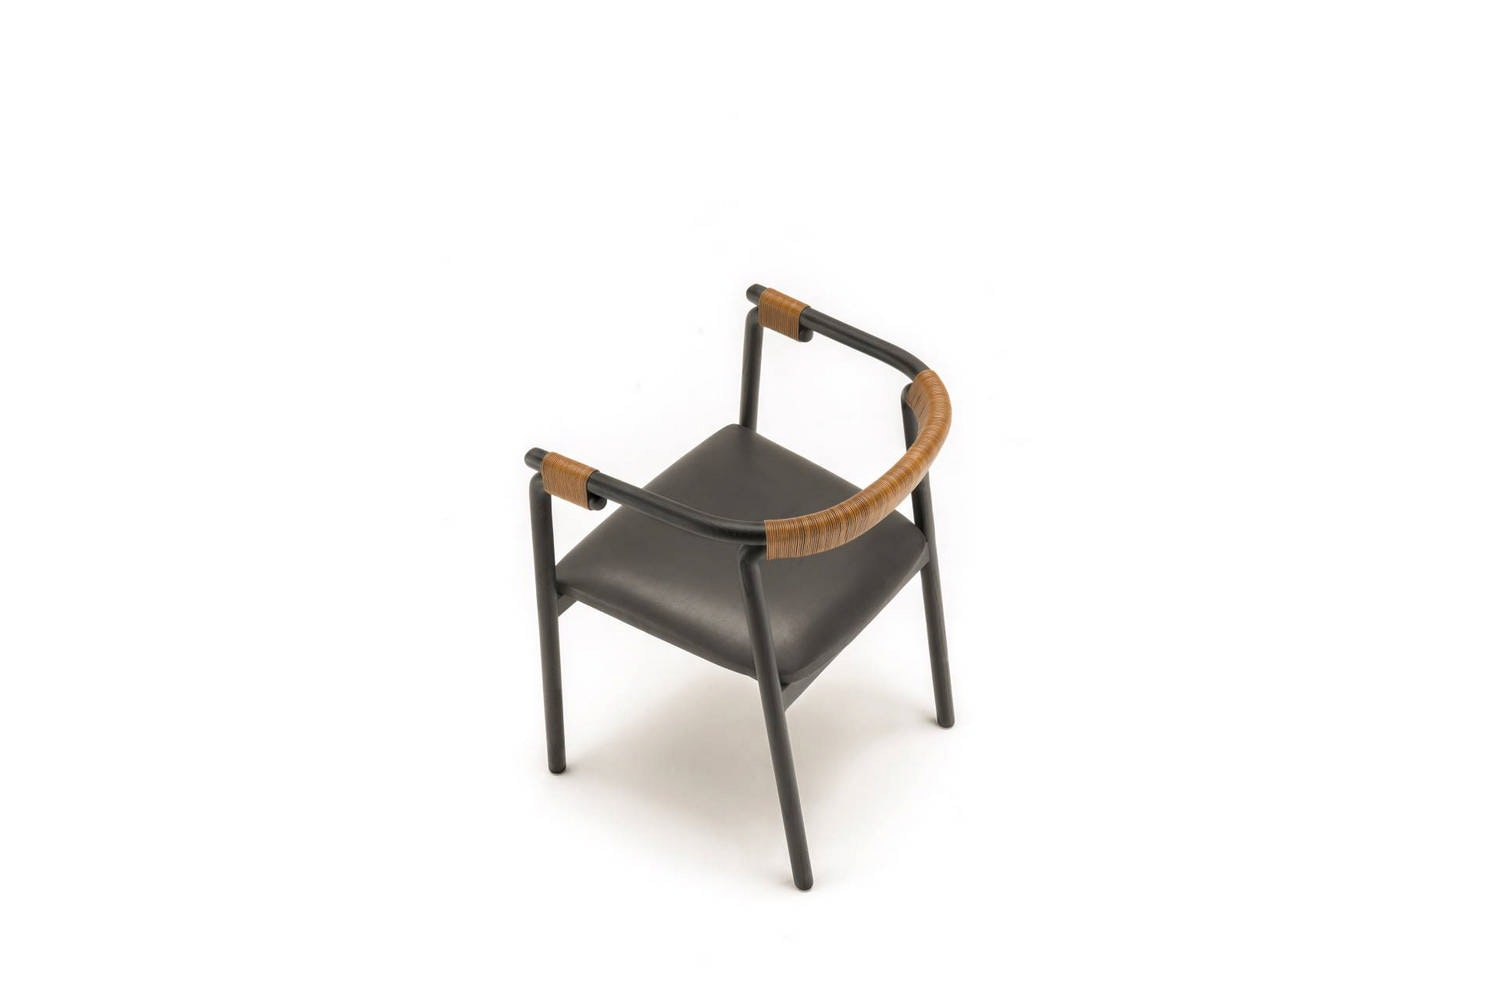 Rivulet Chair by Junpei & Iori Tamaki for Living Divani